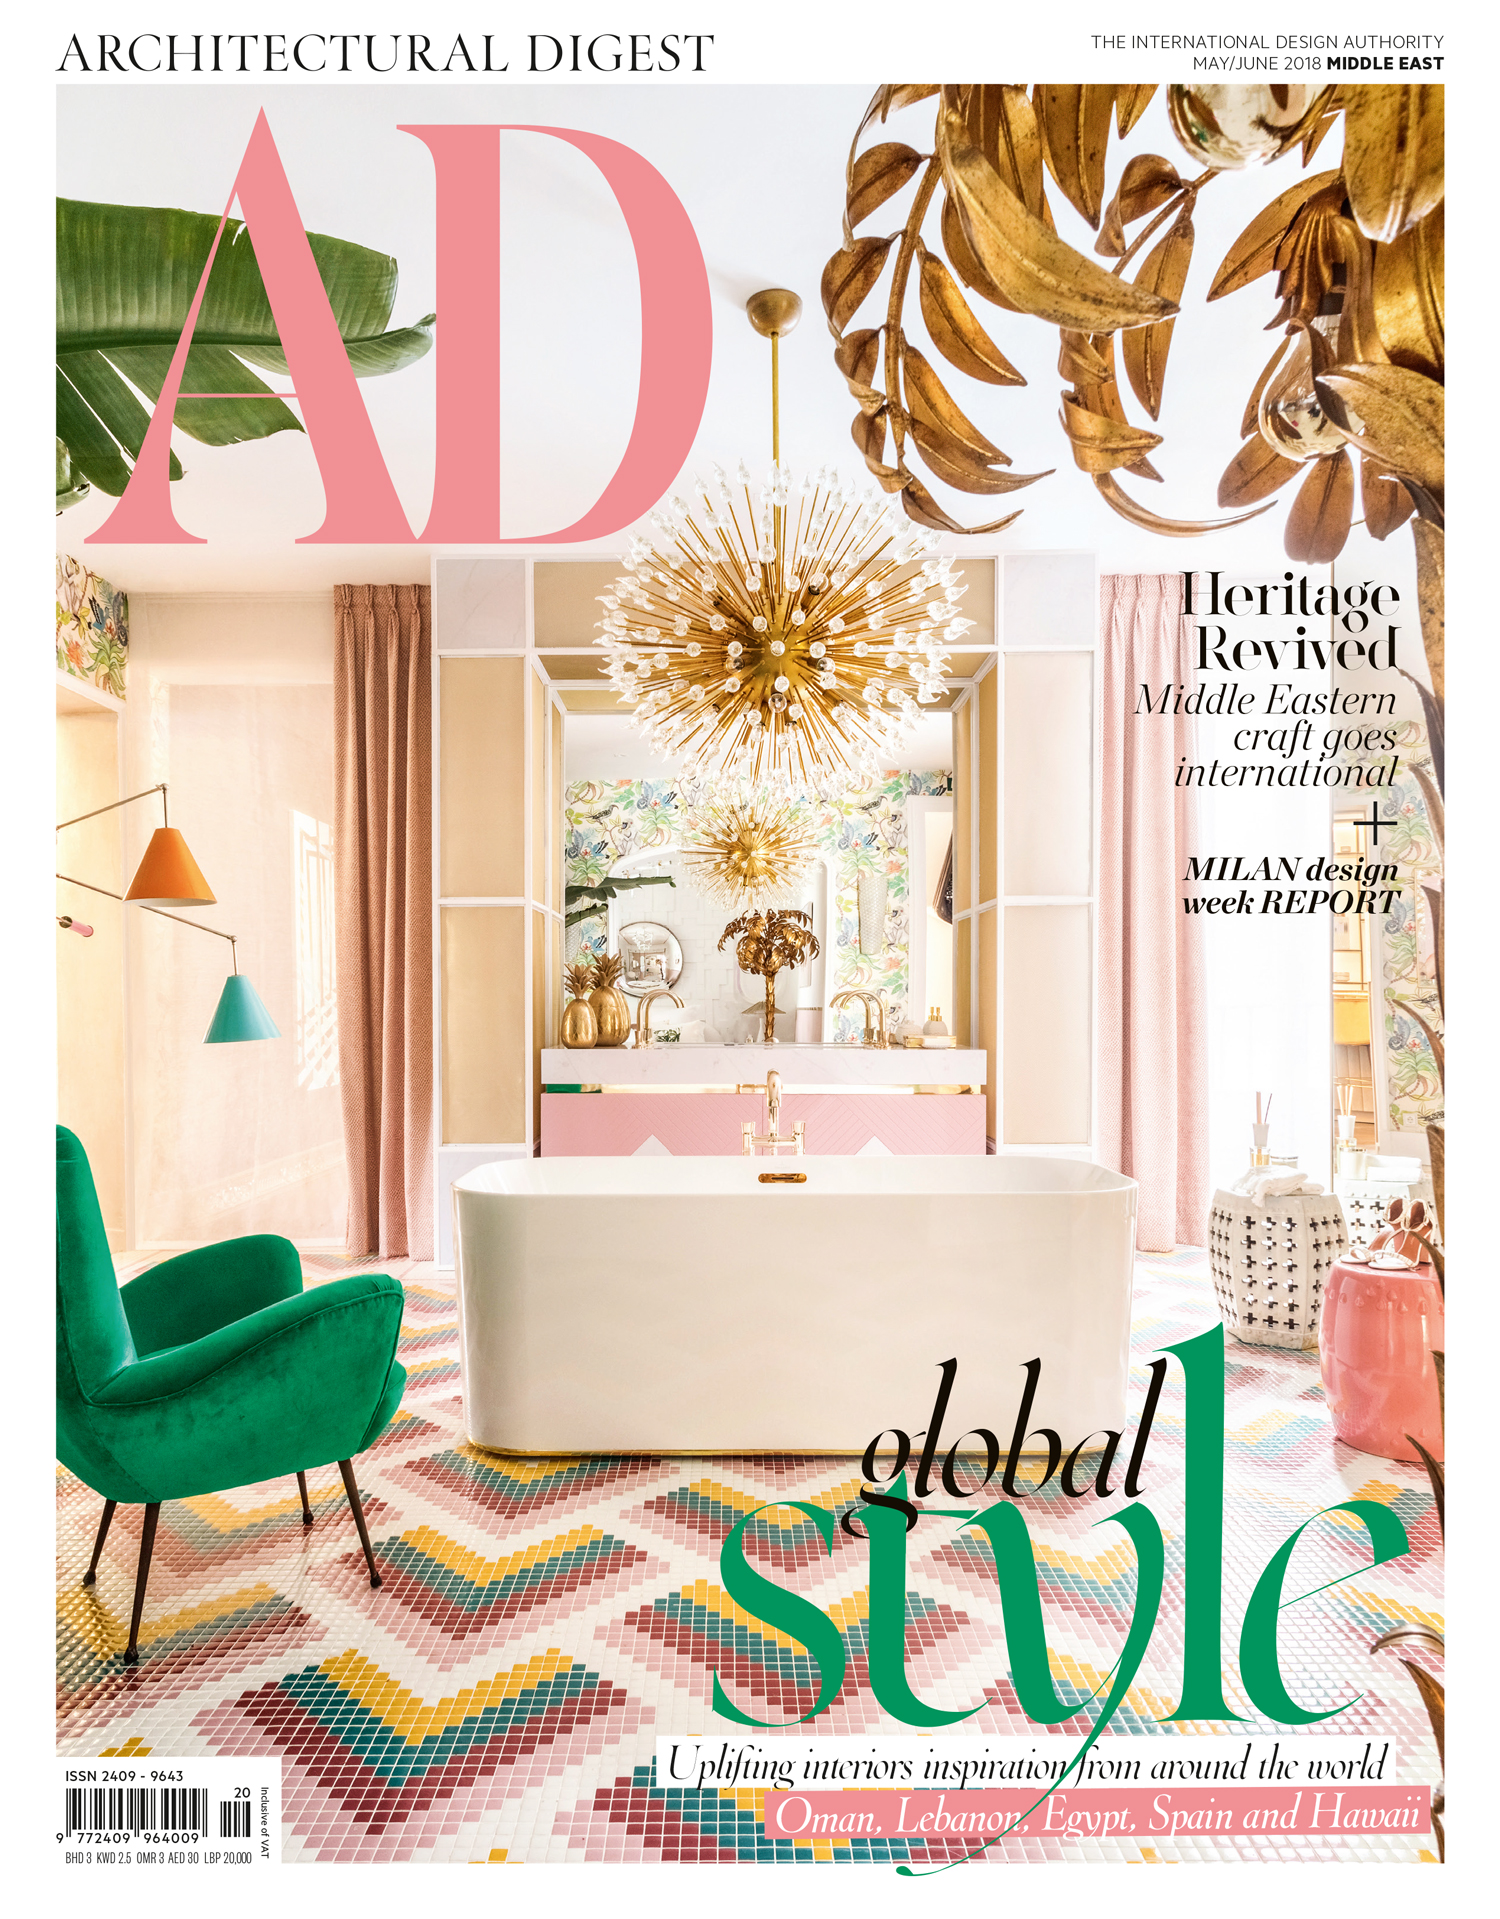 AD_020_COVER1.jpg